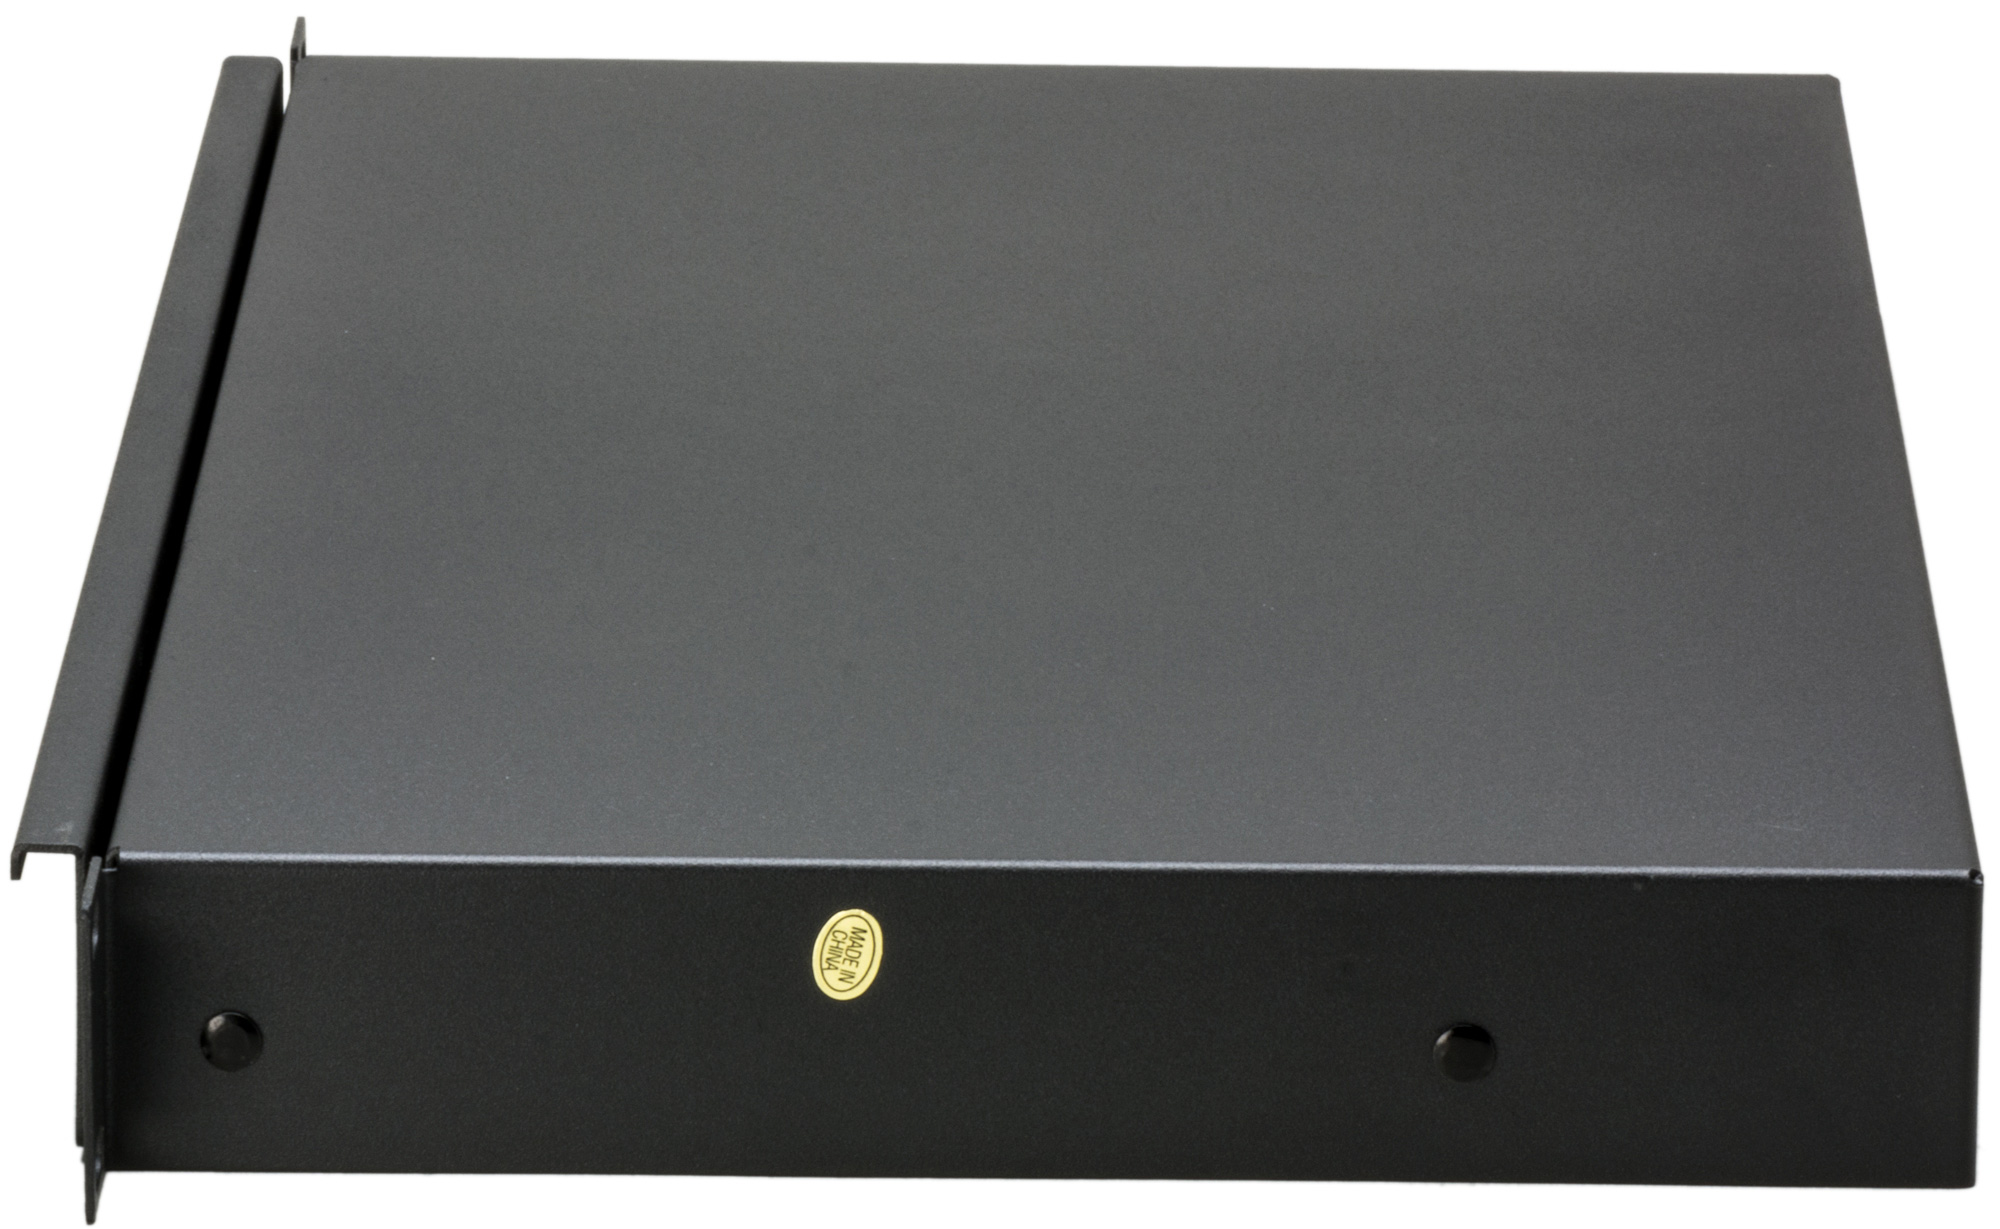 product mic system xs wireless drawer c prox x reg fits rack with case